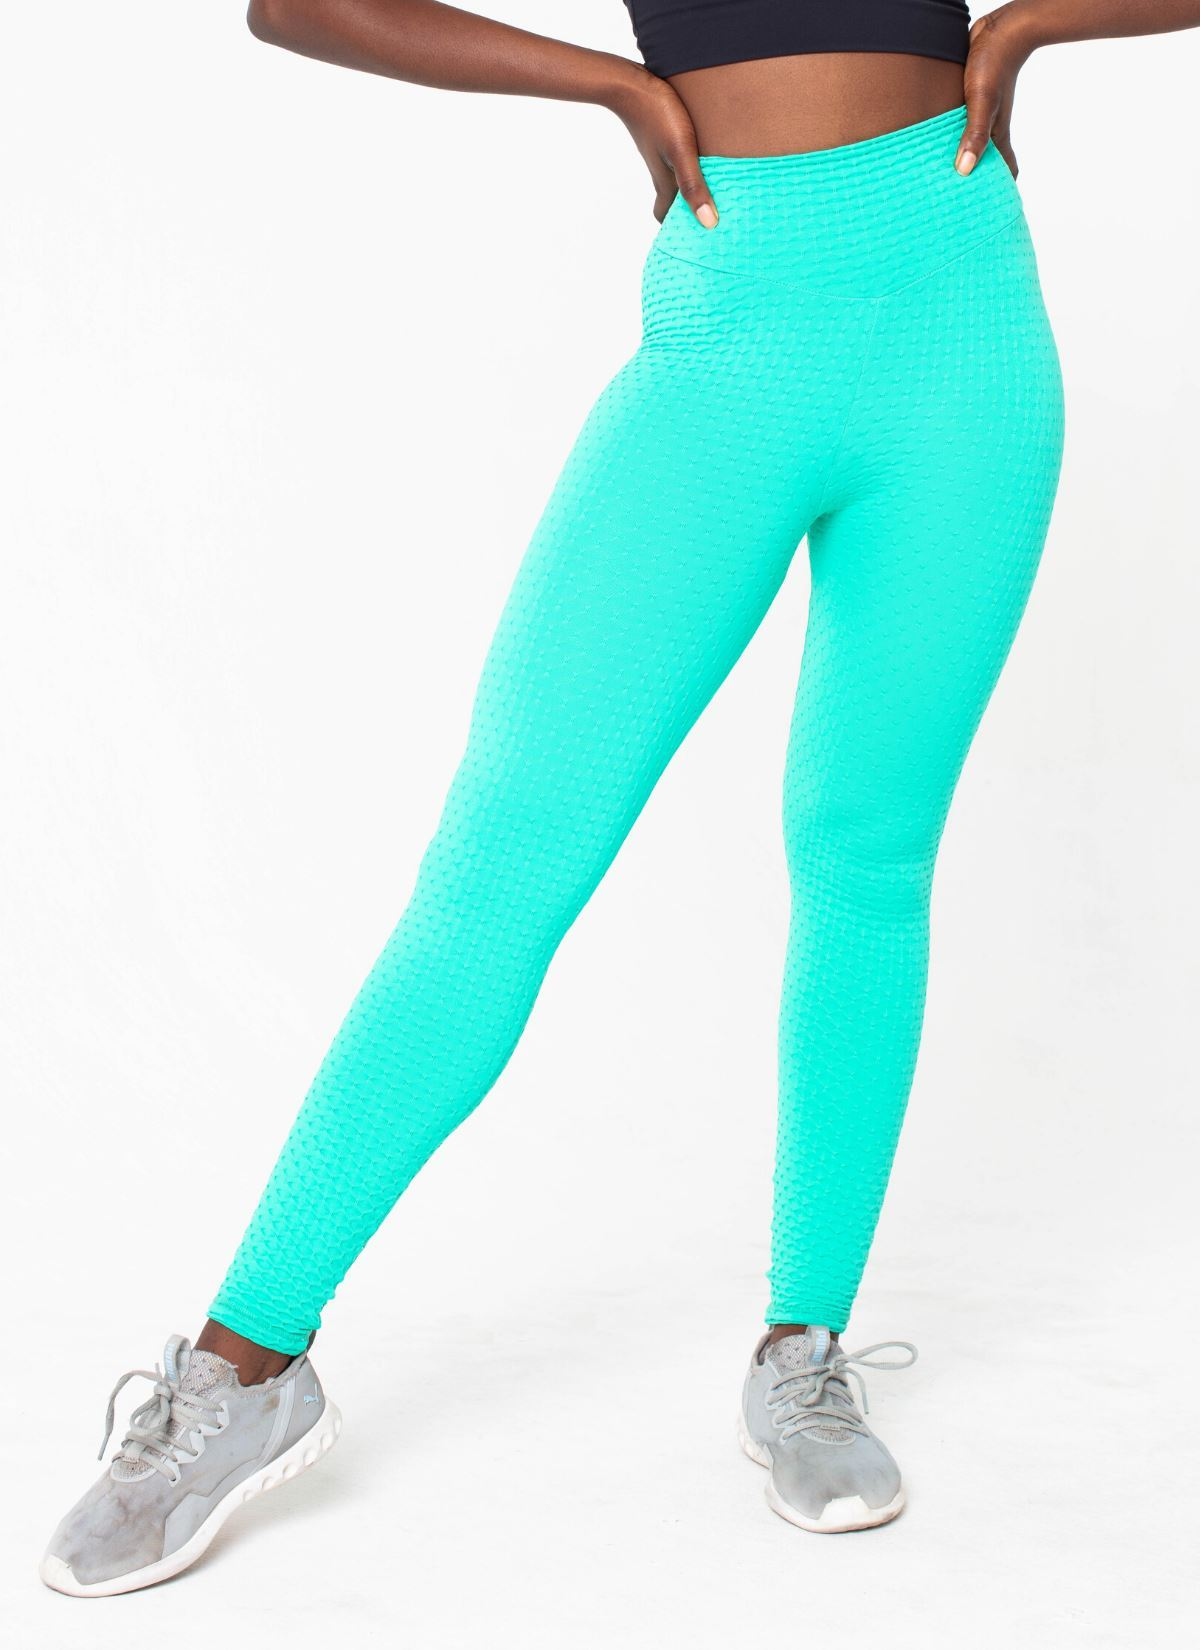 Impact Cellulite-Friendly Seamless Tropical Blue Leggings - Athlete Body